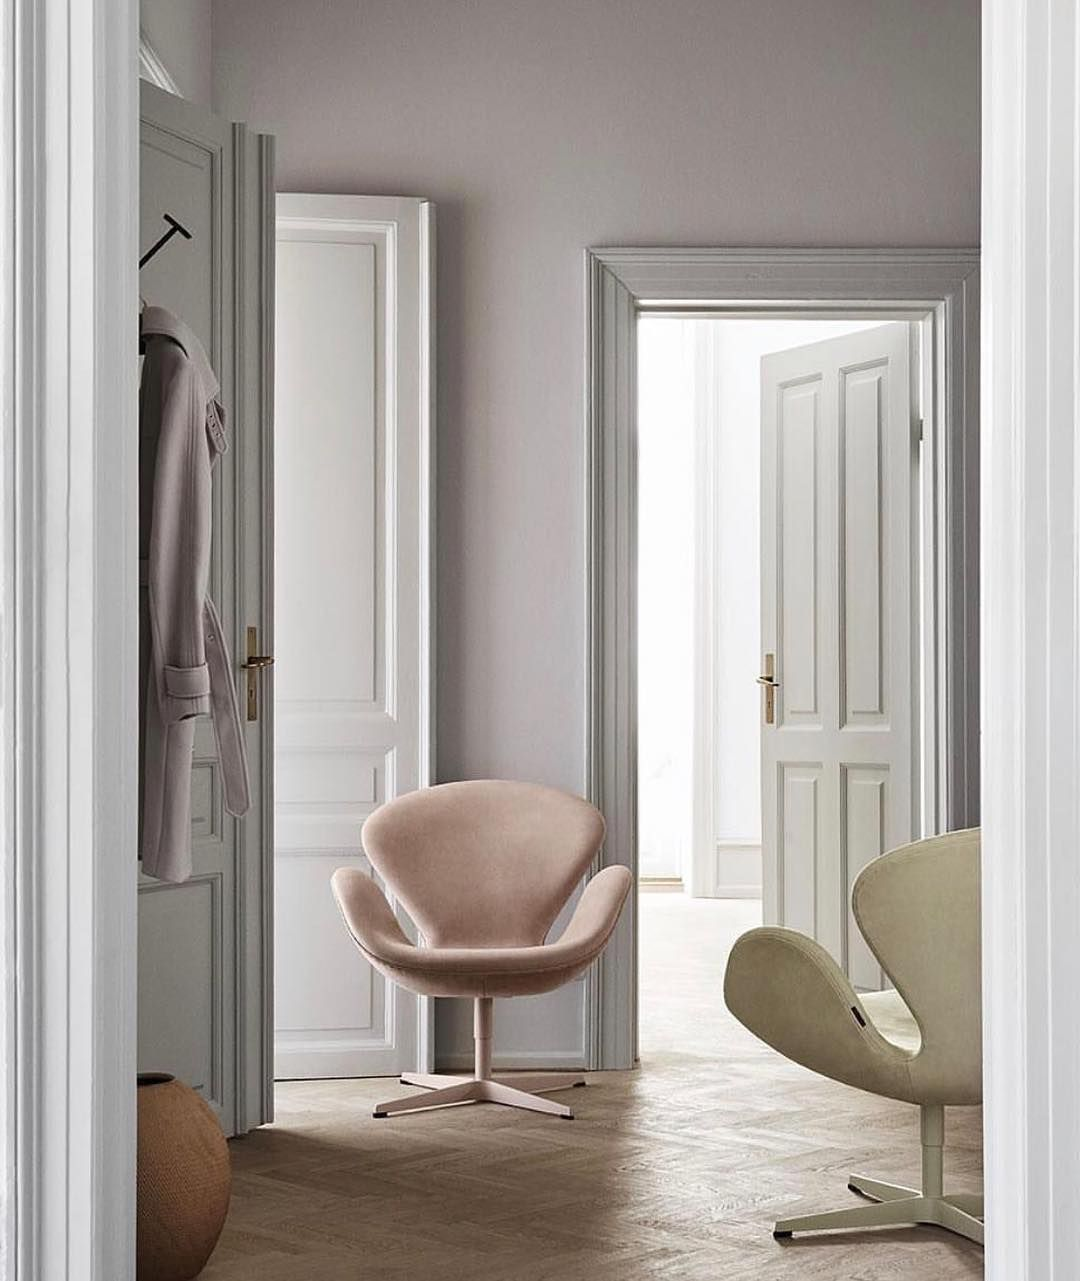 Arne jacobsen interior s w a n s u swan chairs in pastel  by fritzhansen love